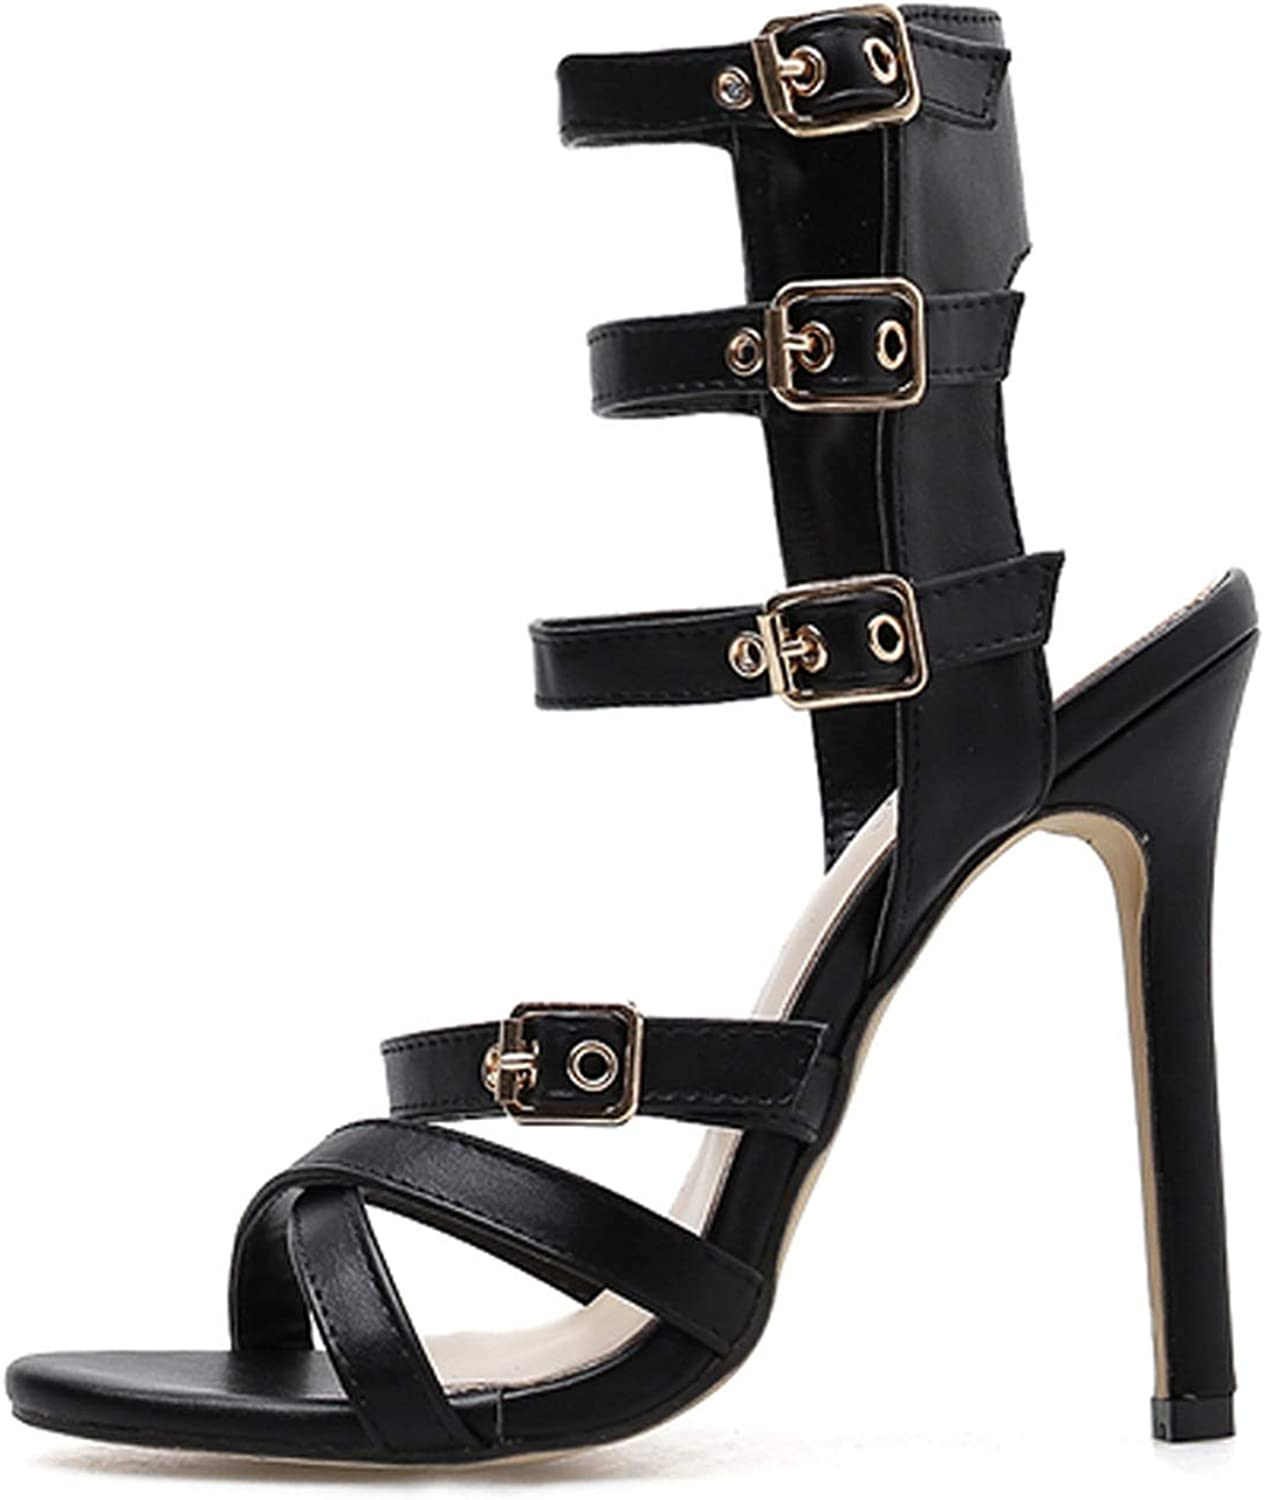 Ches Fashion Peep Toe Party Gladiator Ladies Buckle Strap shoes Black Size 35-40 high Heels Sandals Women for 2019 New